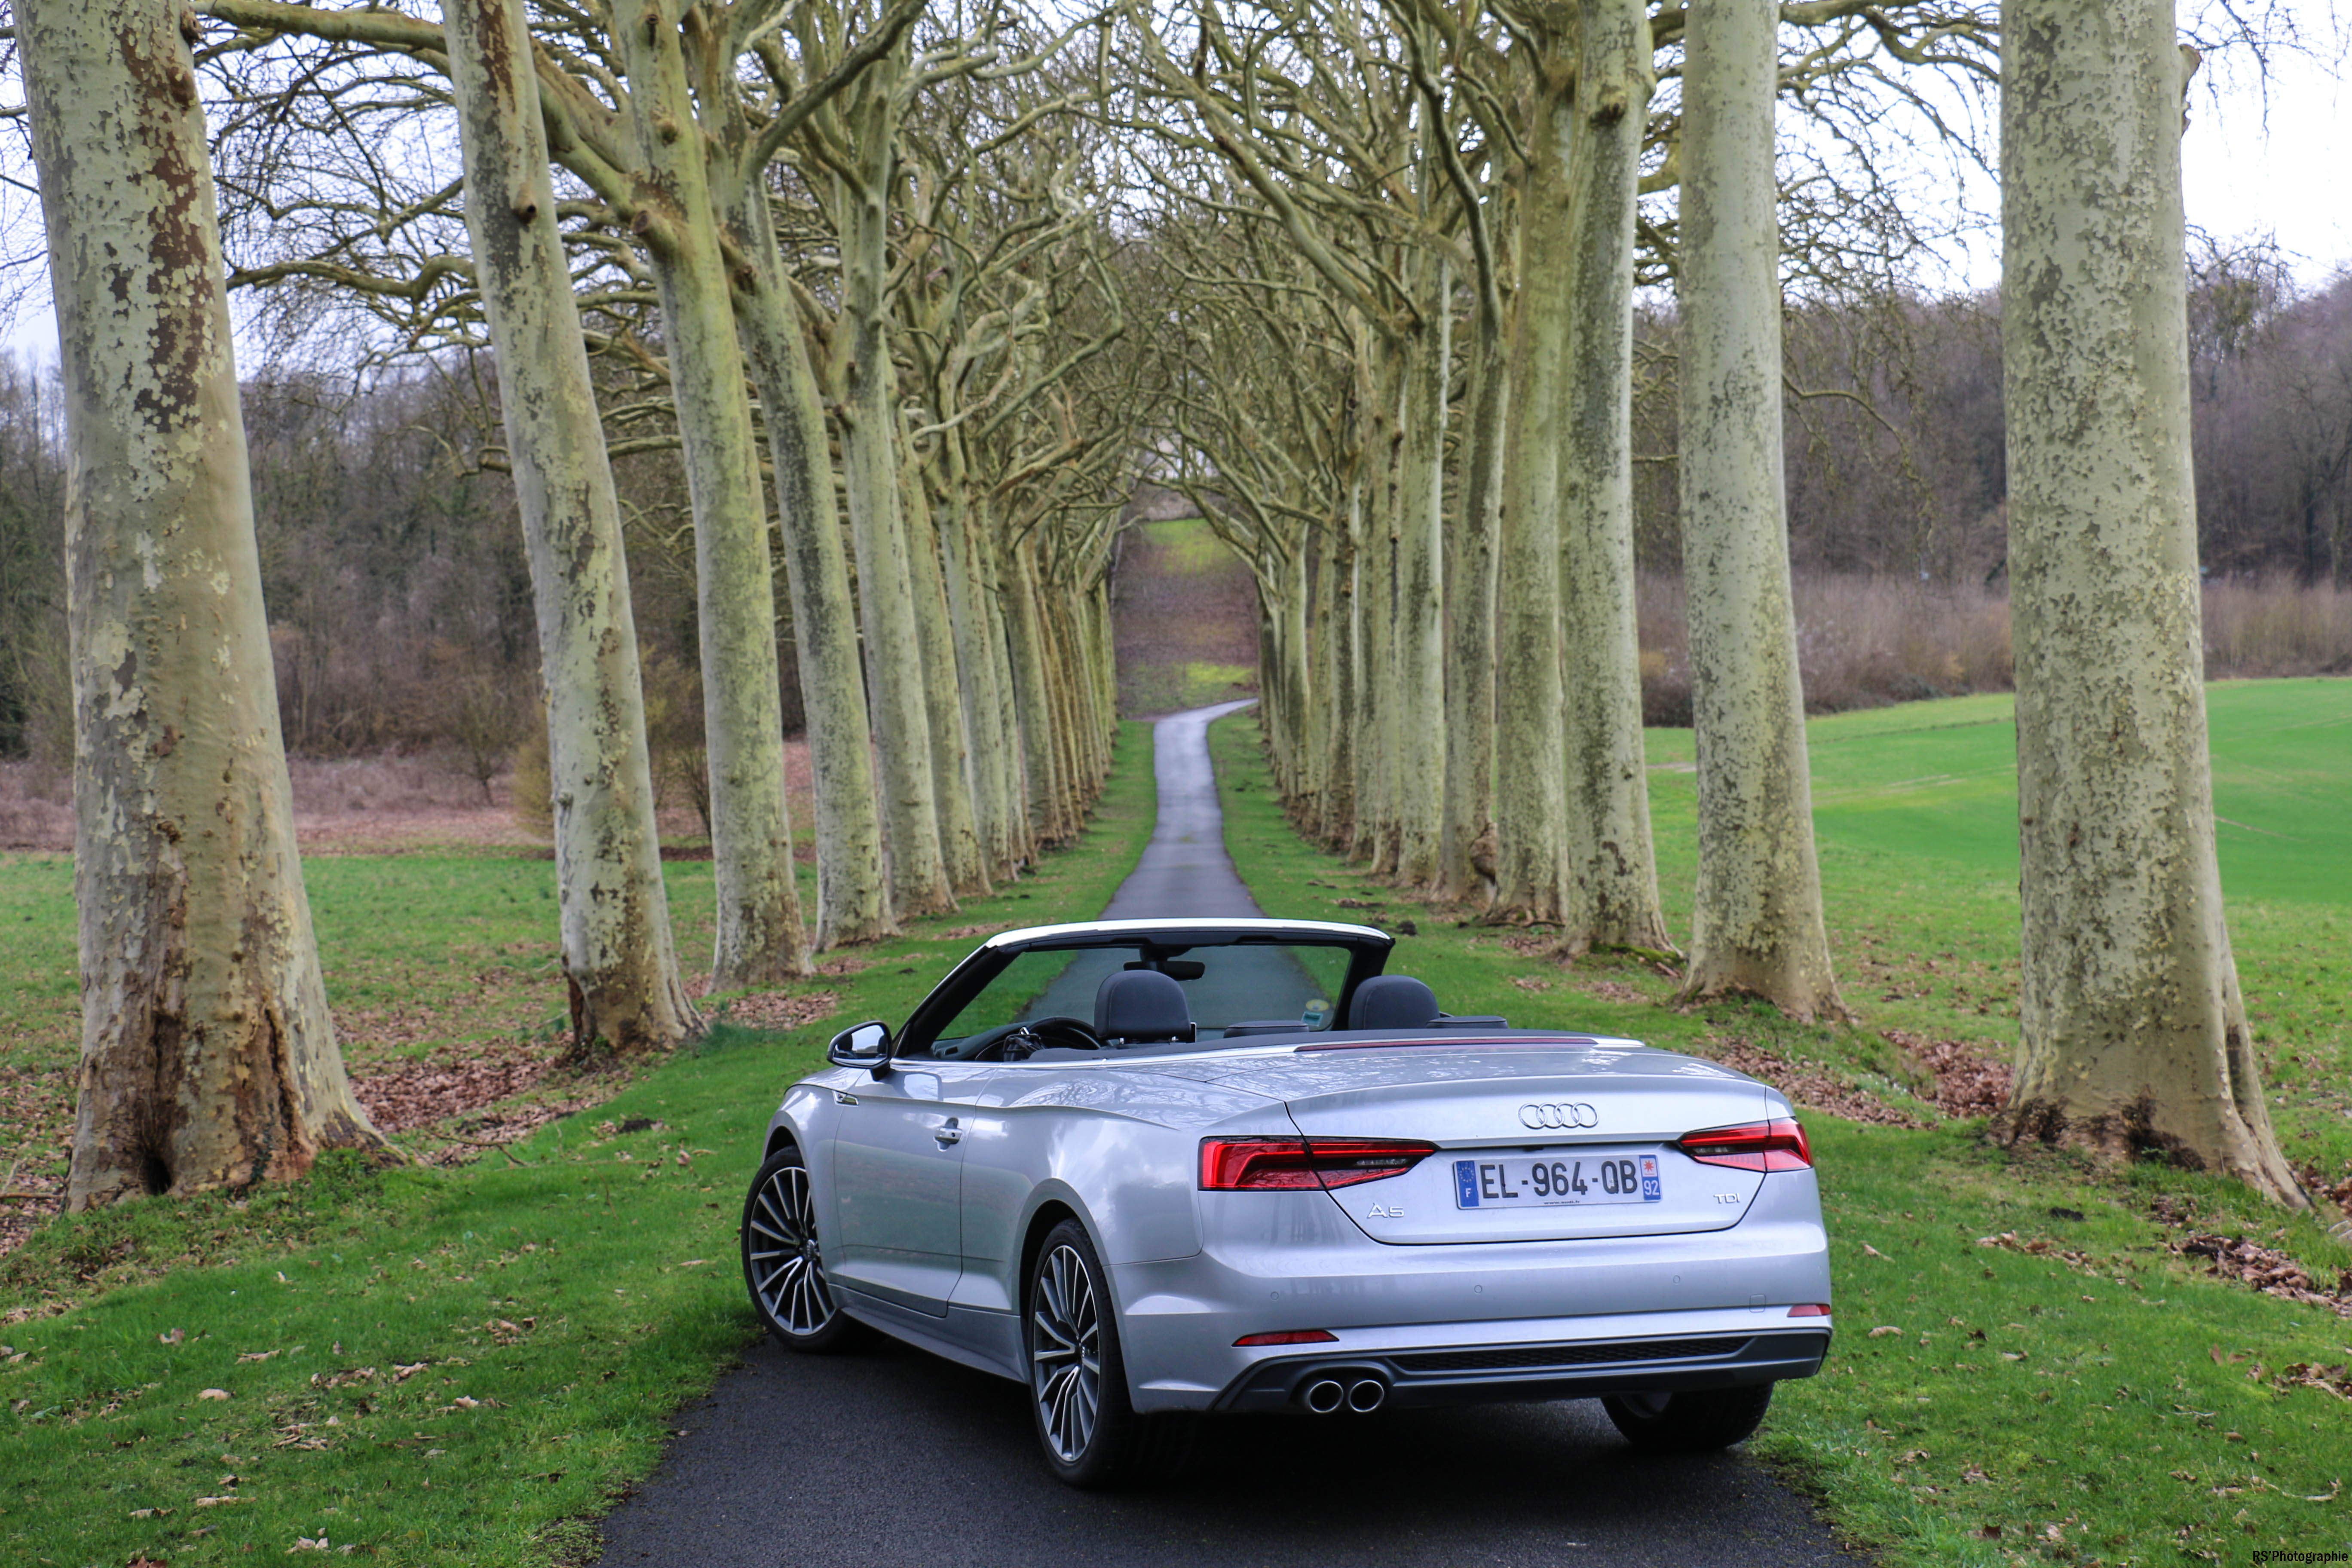 audia5cab1-audi-a5-190-tdi-cabriolet-arriere-rear-Arnaud Demasier-RSPhotographie